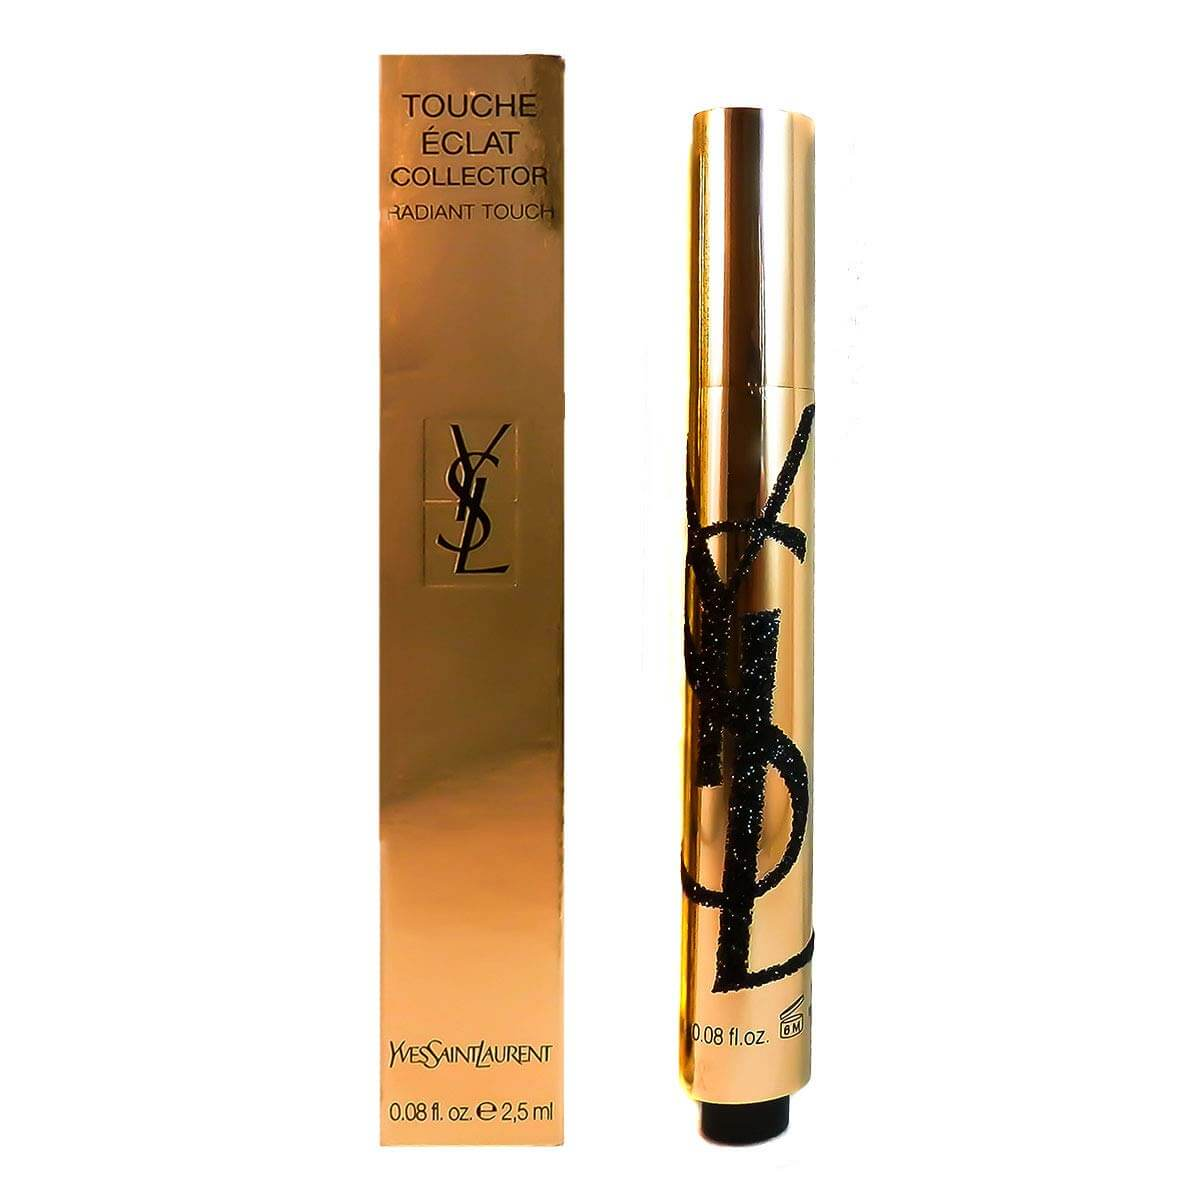 Yves Saint Laurent Touche Eclat 2.5 Ml No.1 Luminous Radiance Radiant Touch